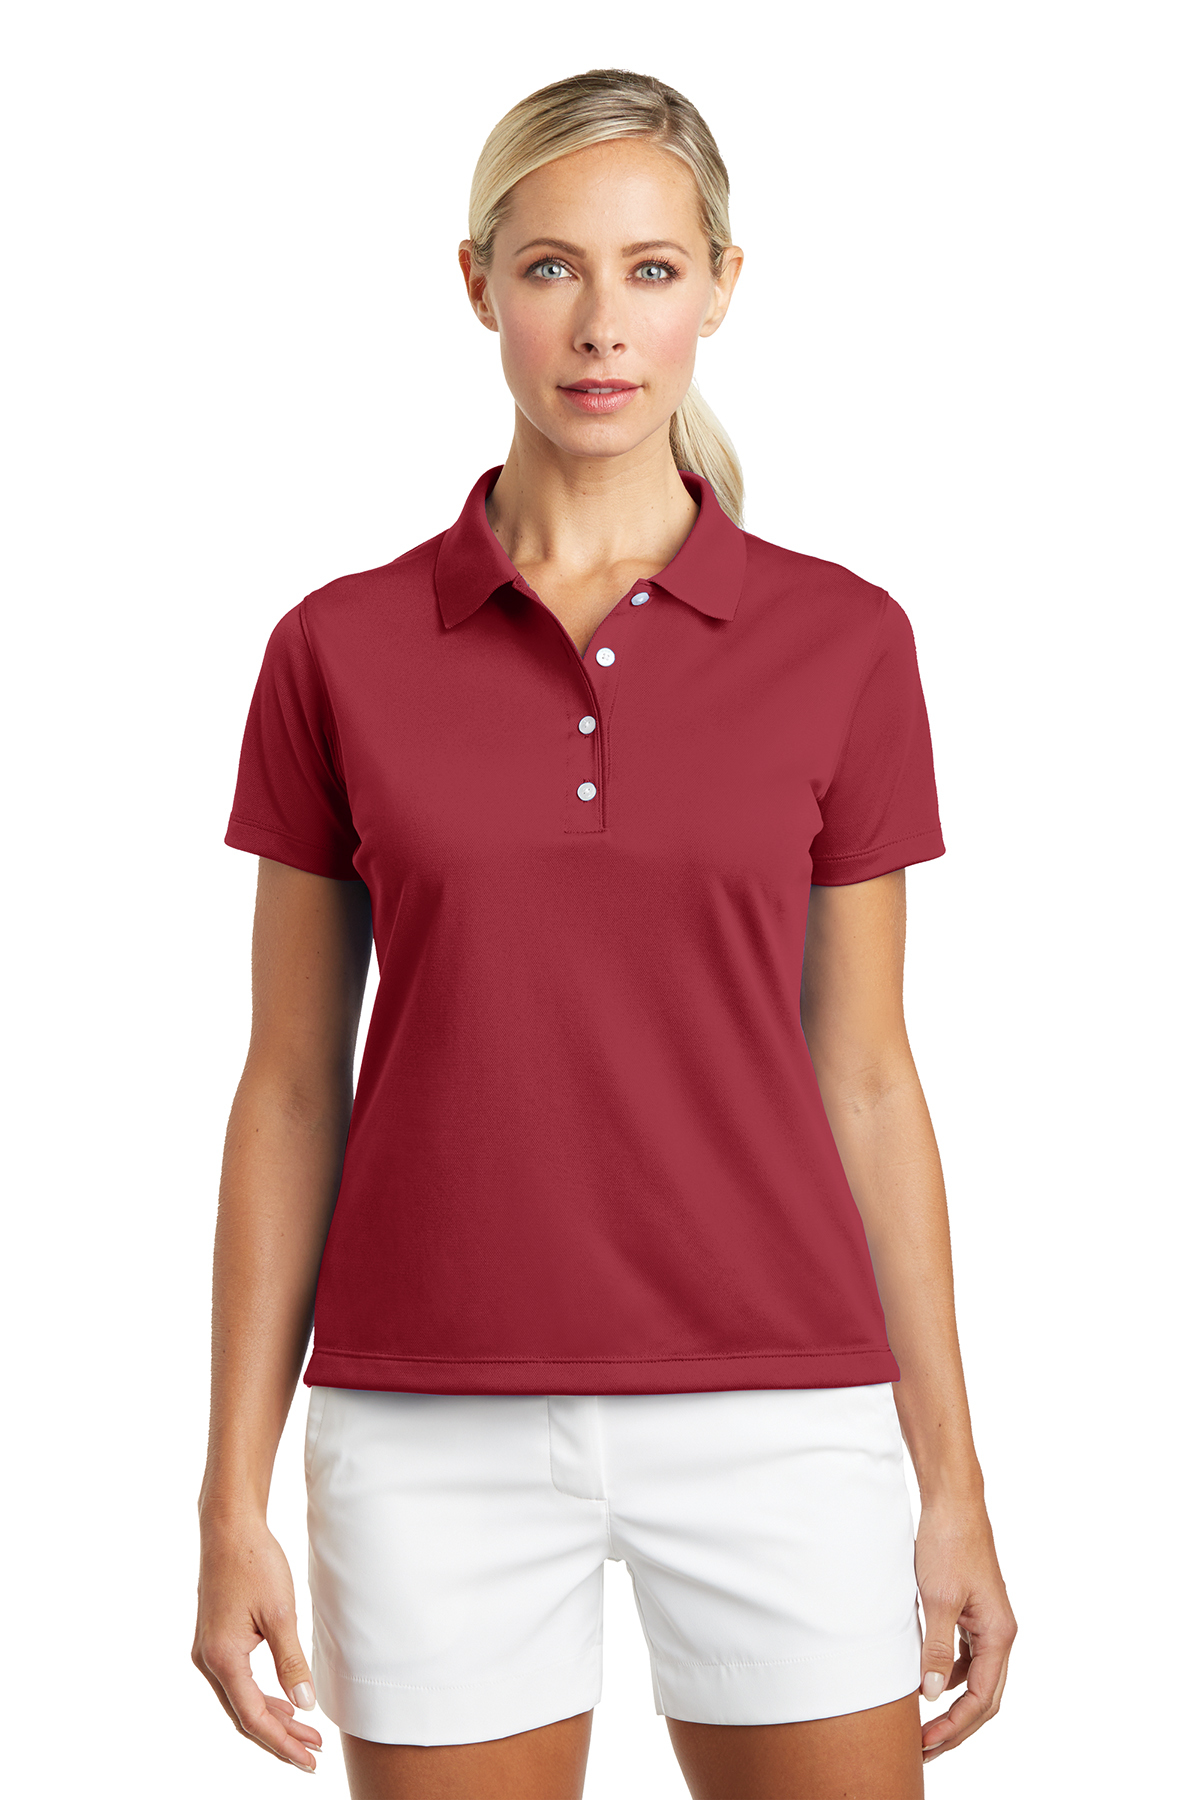 8c8876d6 Nike Ladies Tech Basic Dri-FIT Polo | Ladies/Women | Polos/Knits ...